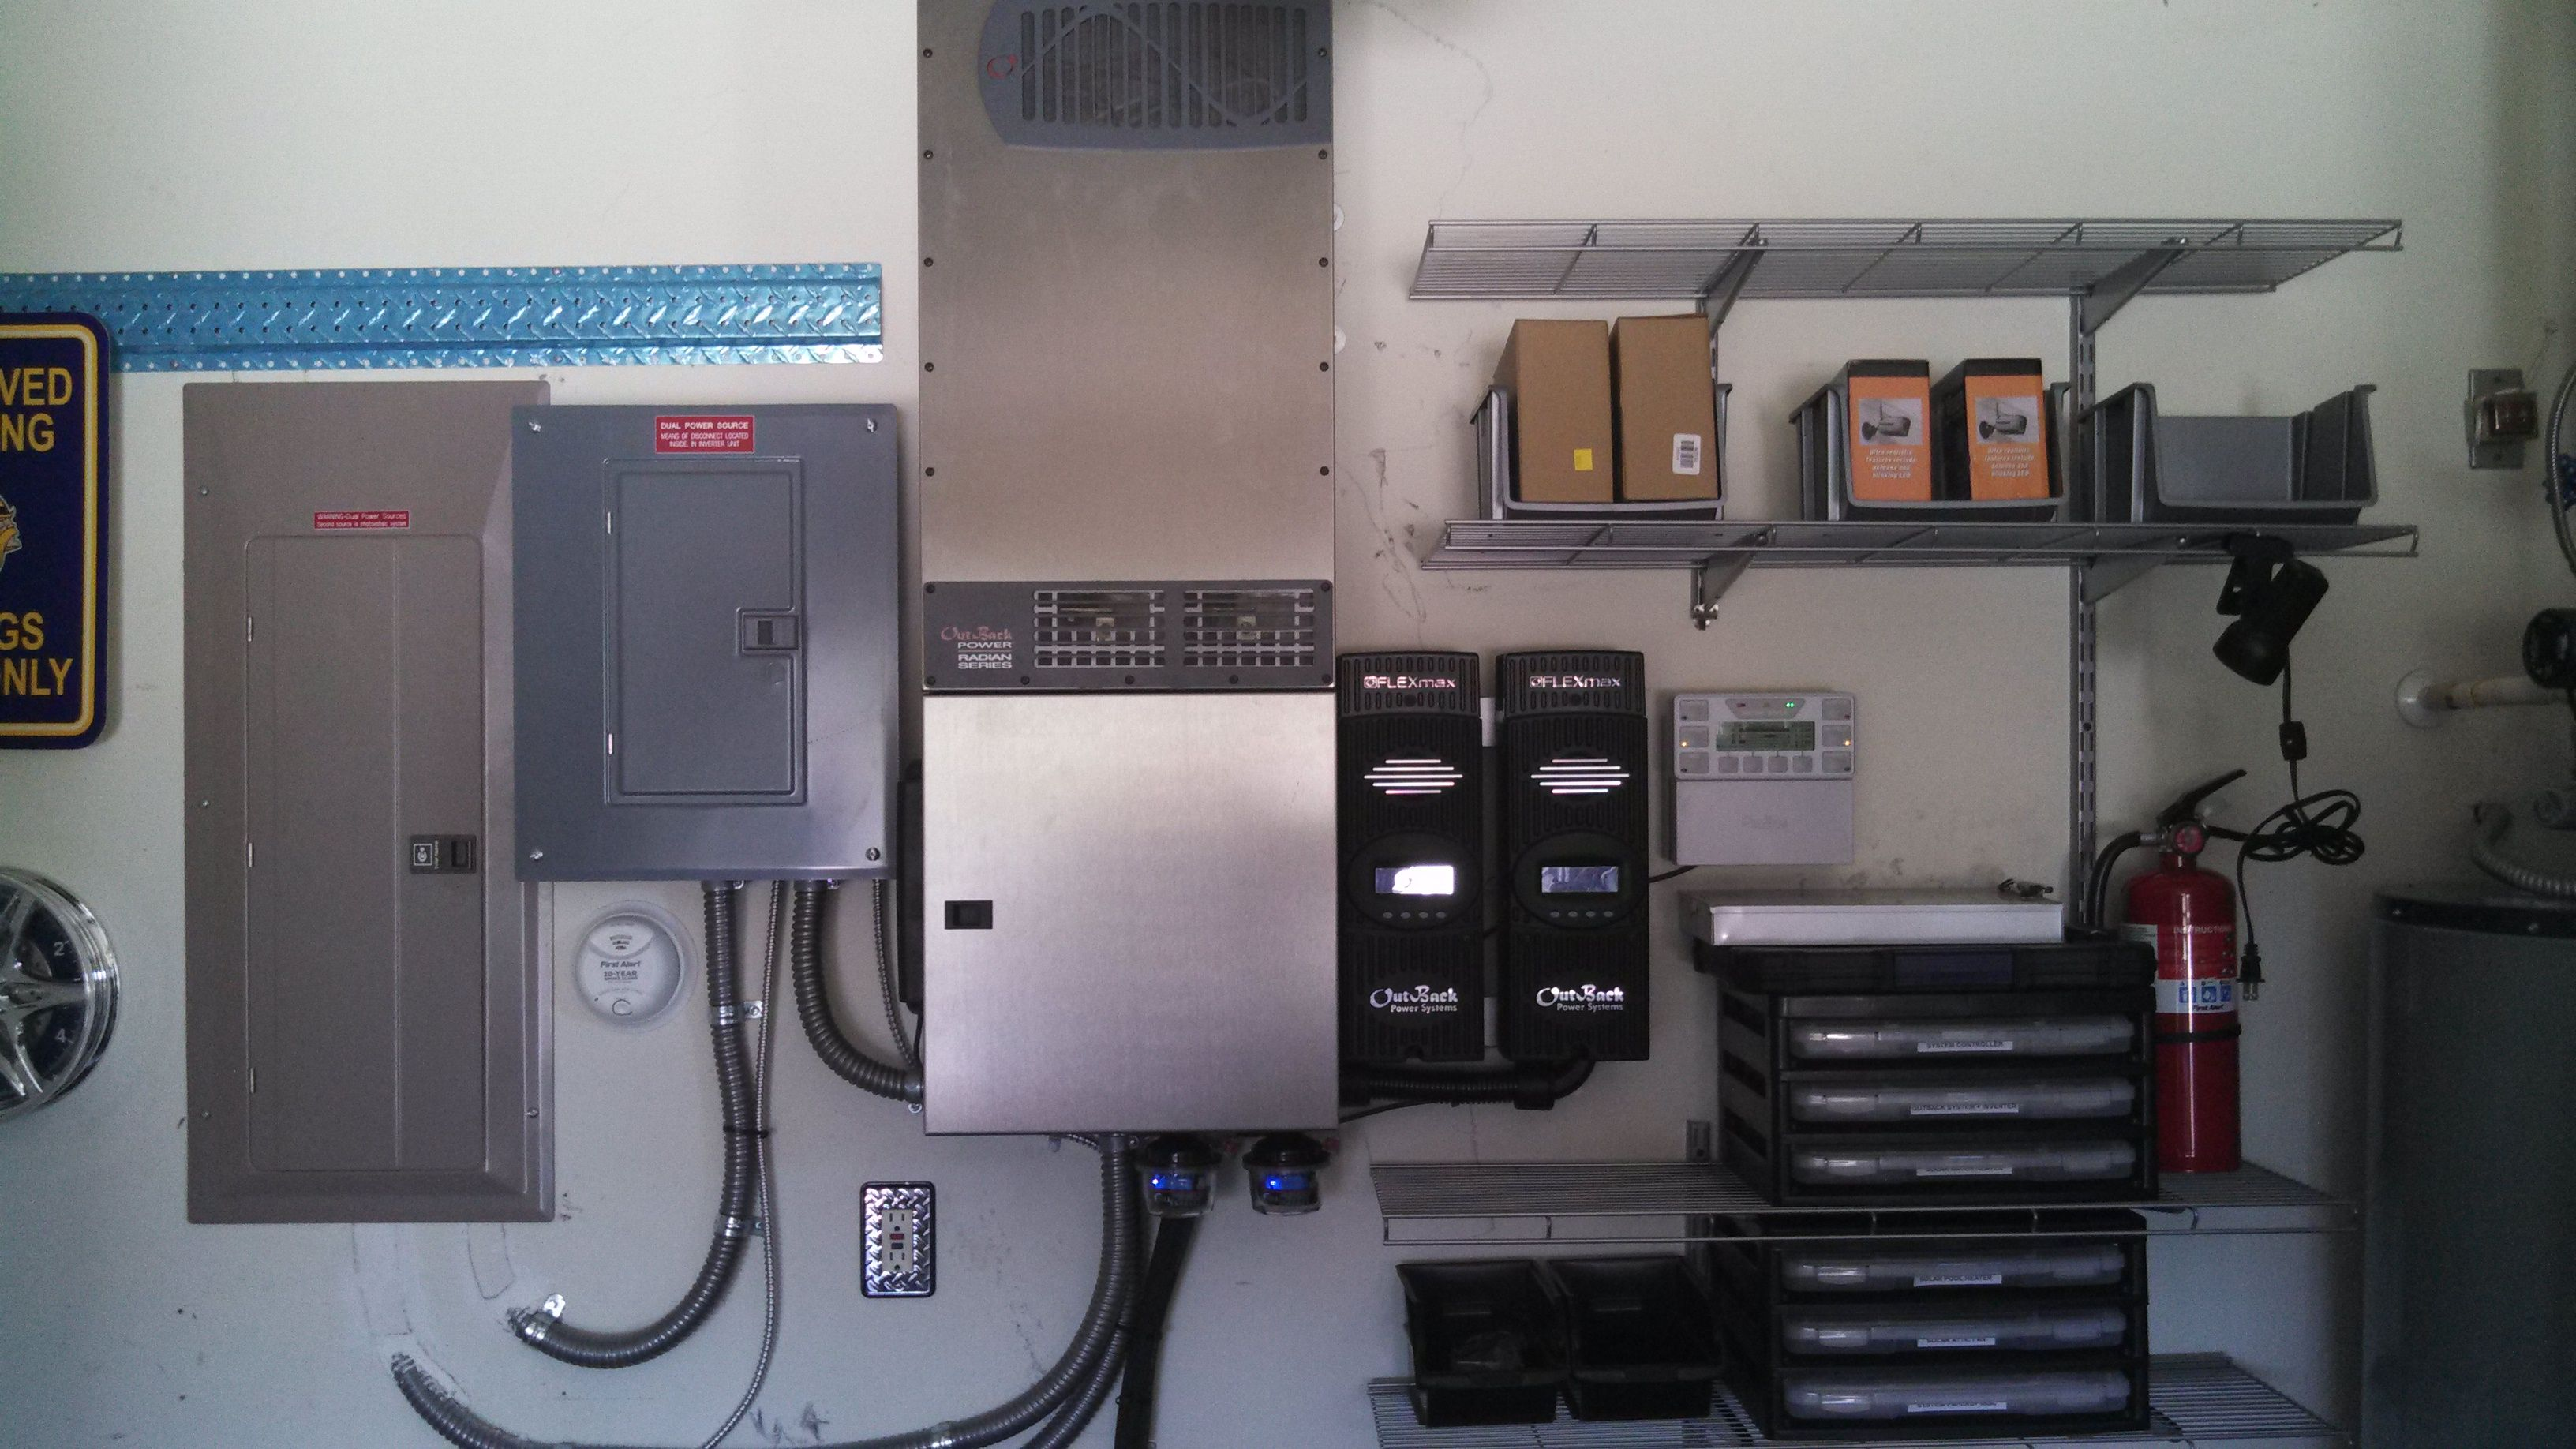 outback power systems radian series 8kw 16 trojan l 16 outback power systems radian series 8kw 16 trojan l 16 batteries cape coral